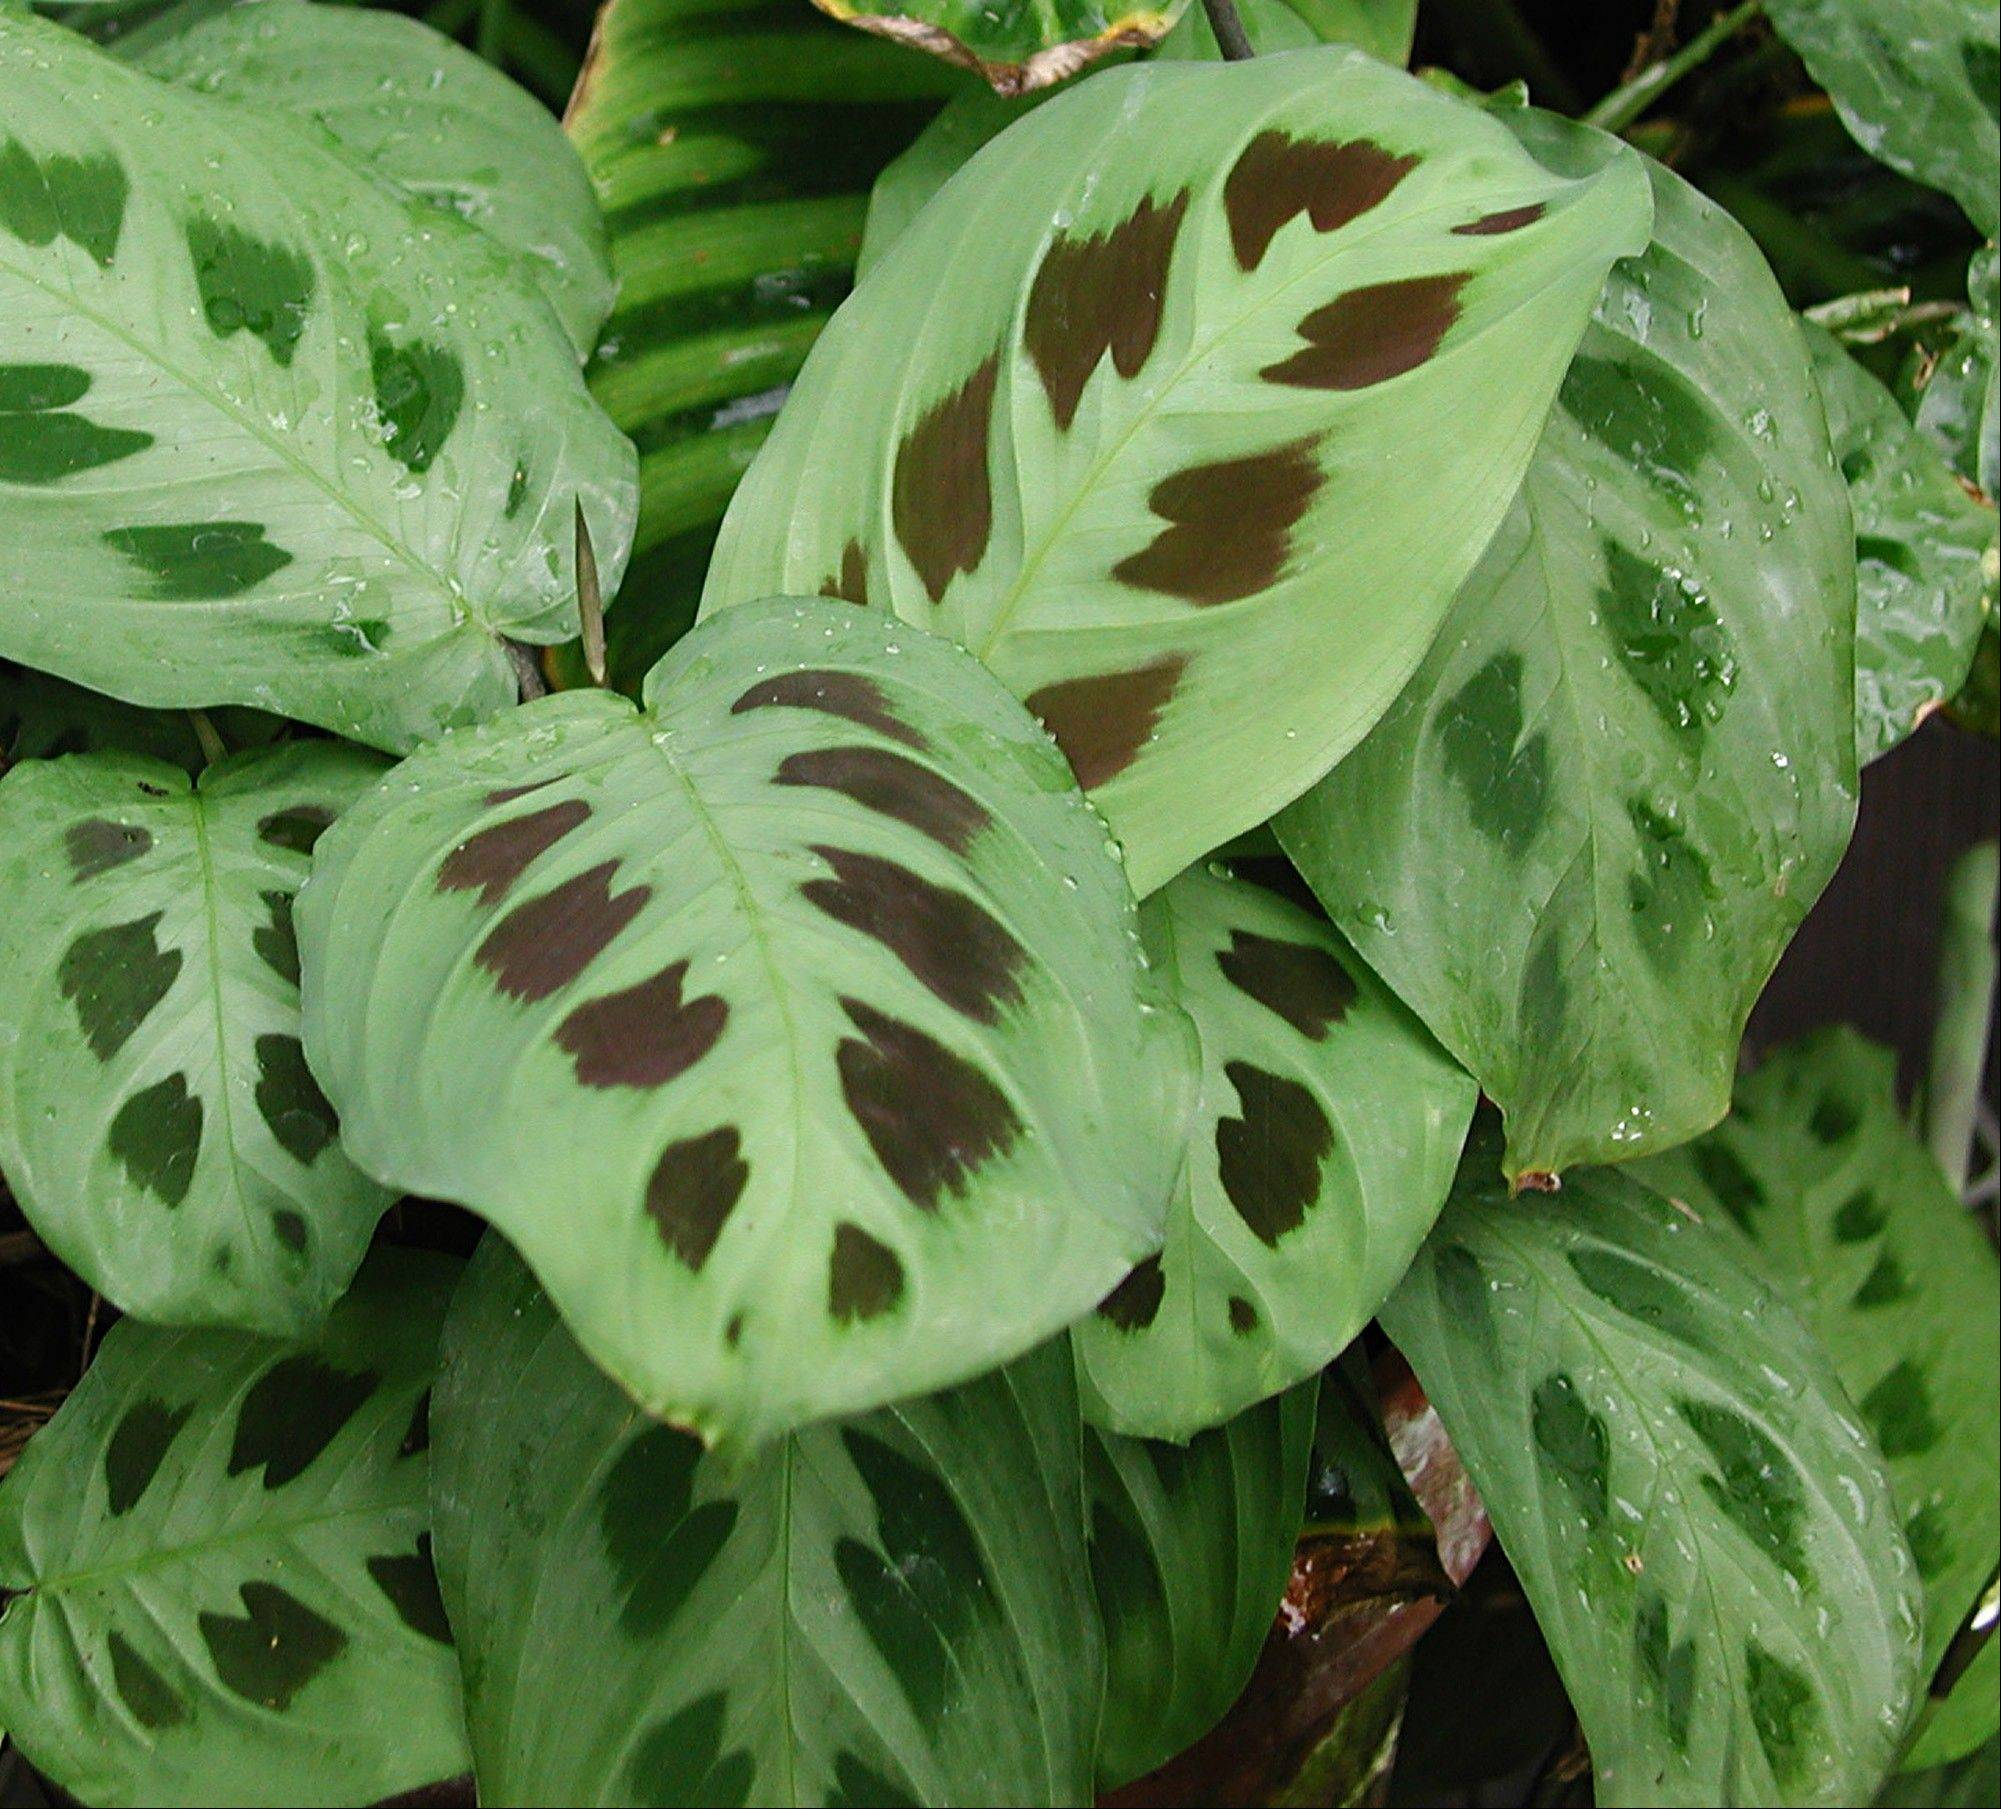 A prayer plant (Maranta leuconeura) is a houseplant that tolerates low light levels and �prays� by folding up its leaves each evening.